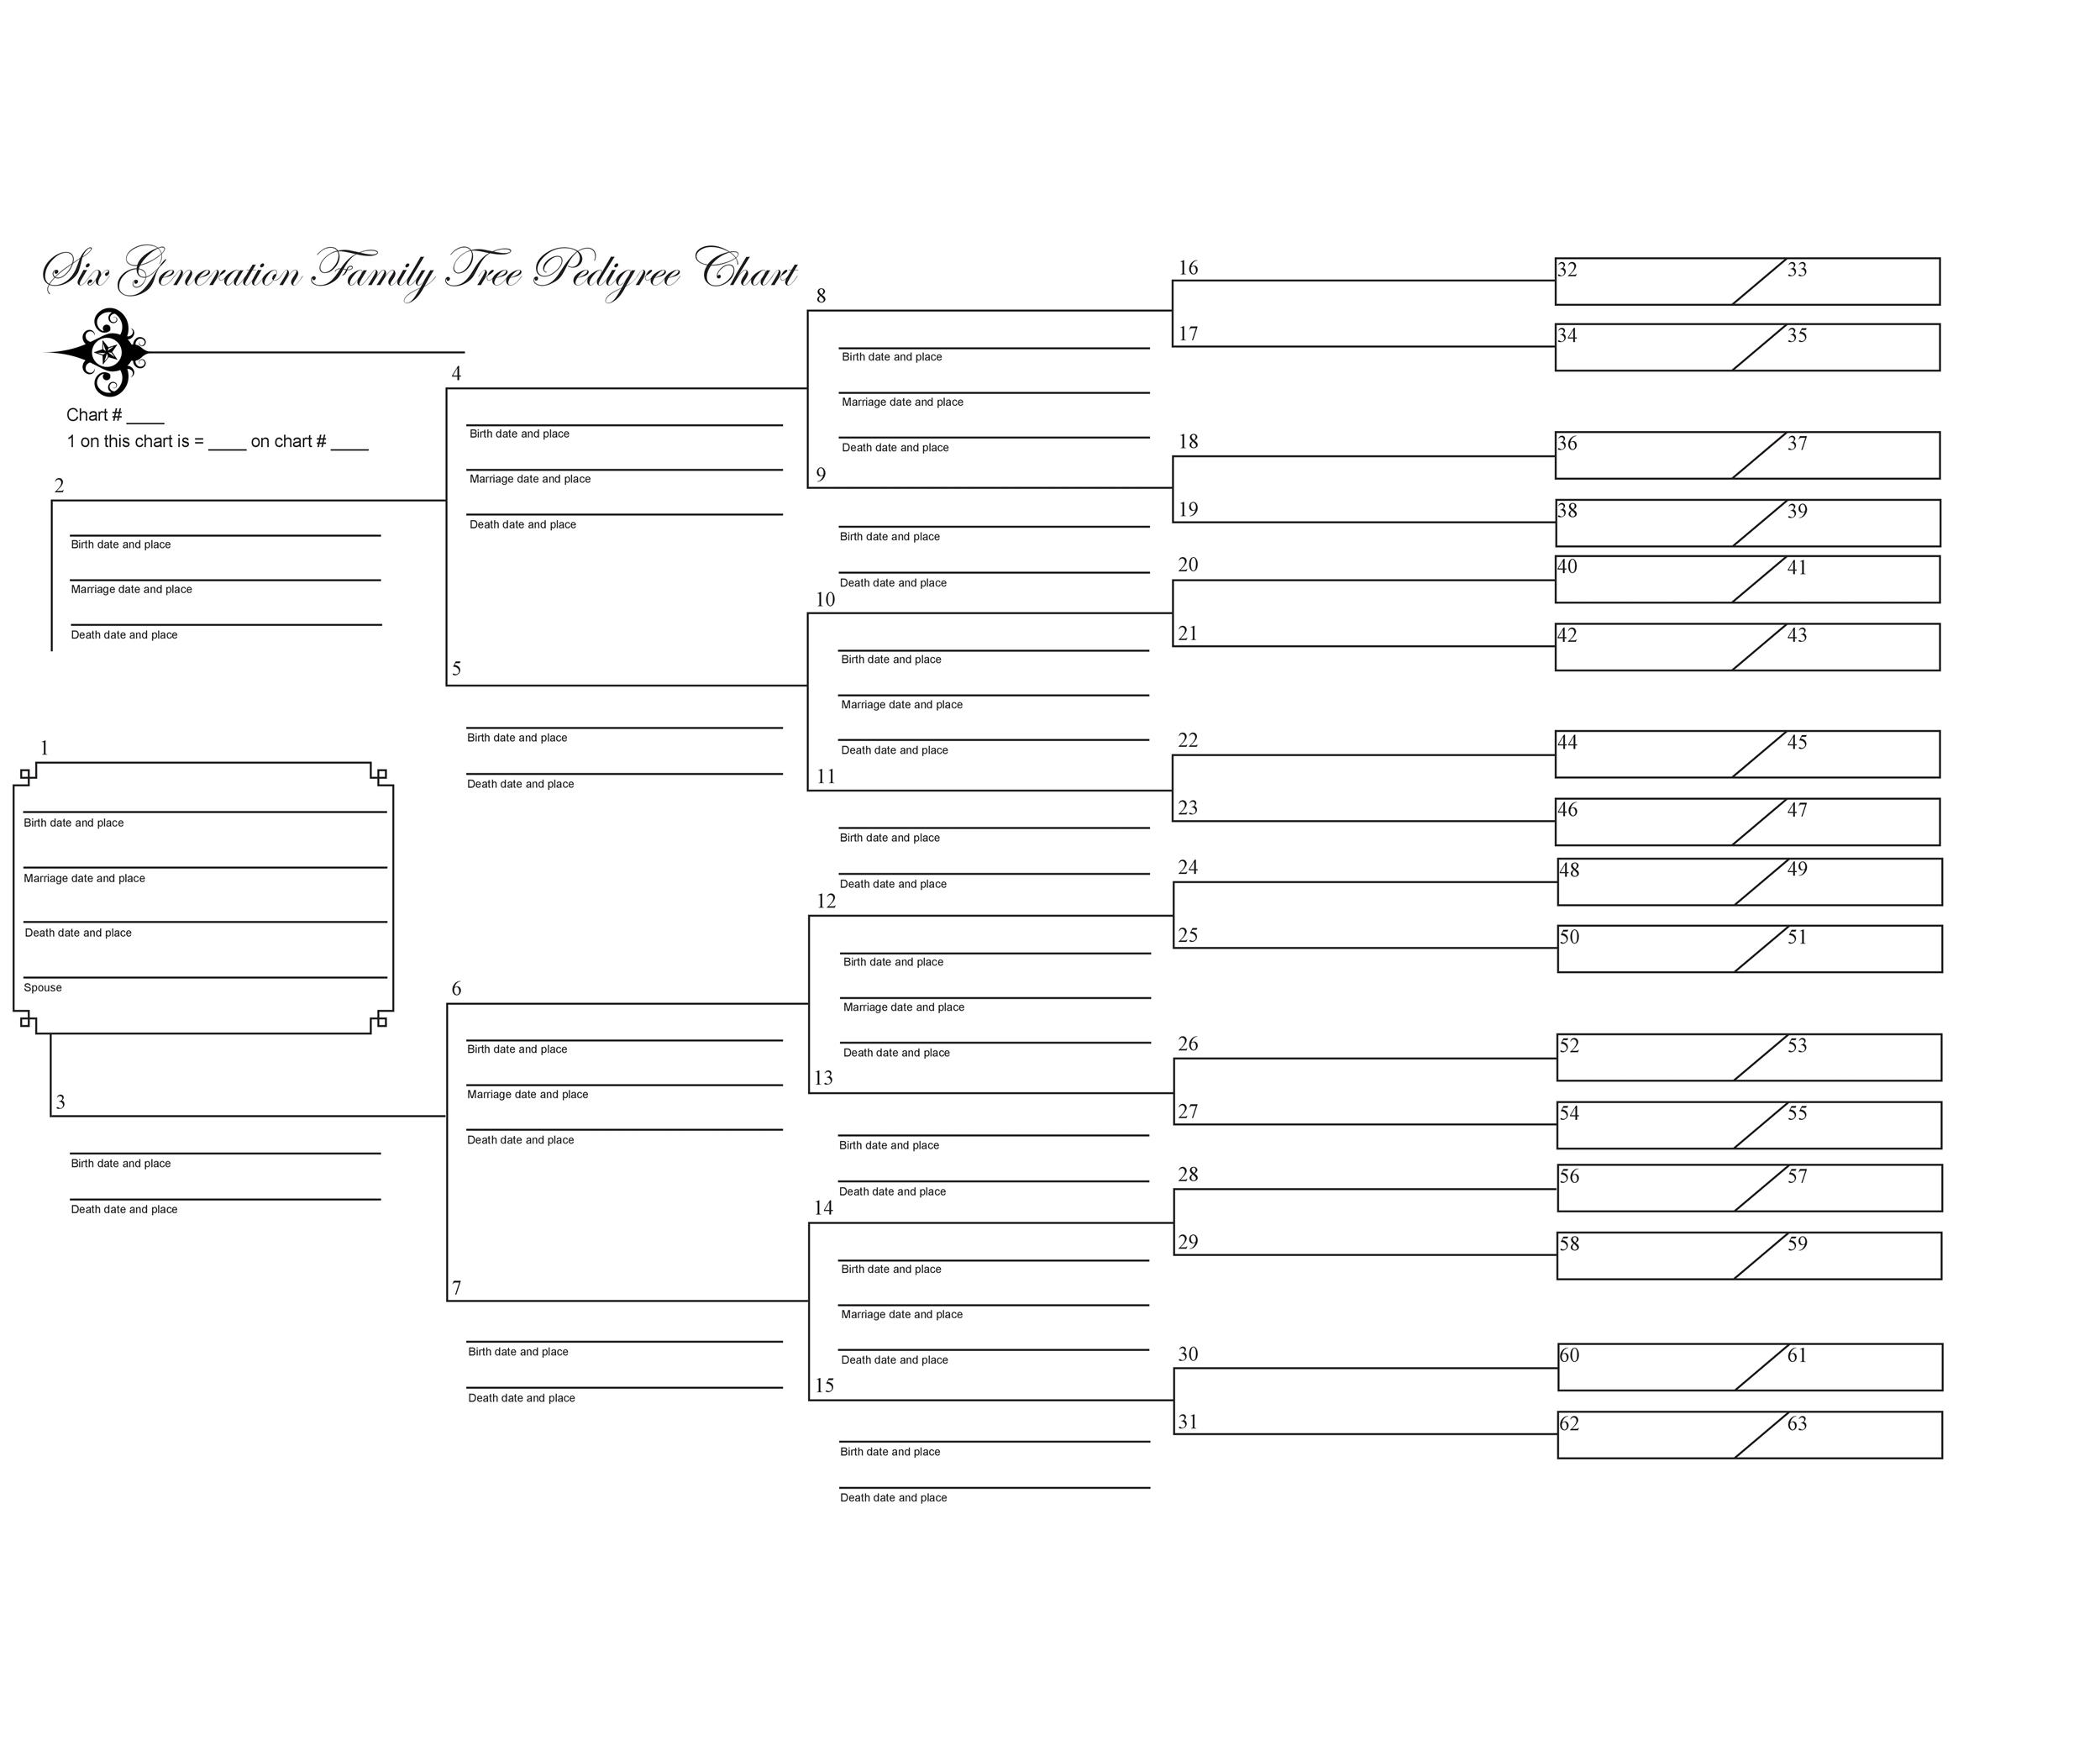 40 free family tree templates word excel pdf for Family history charts templates